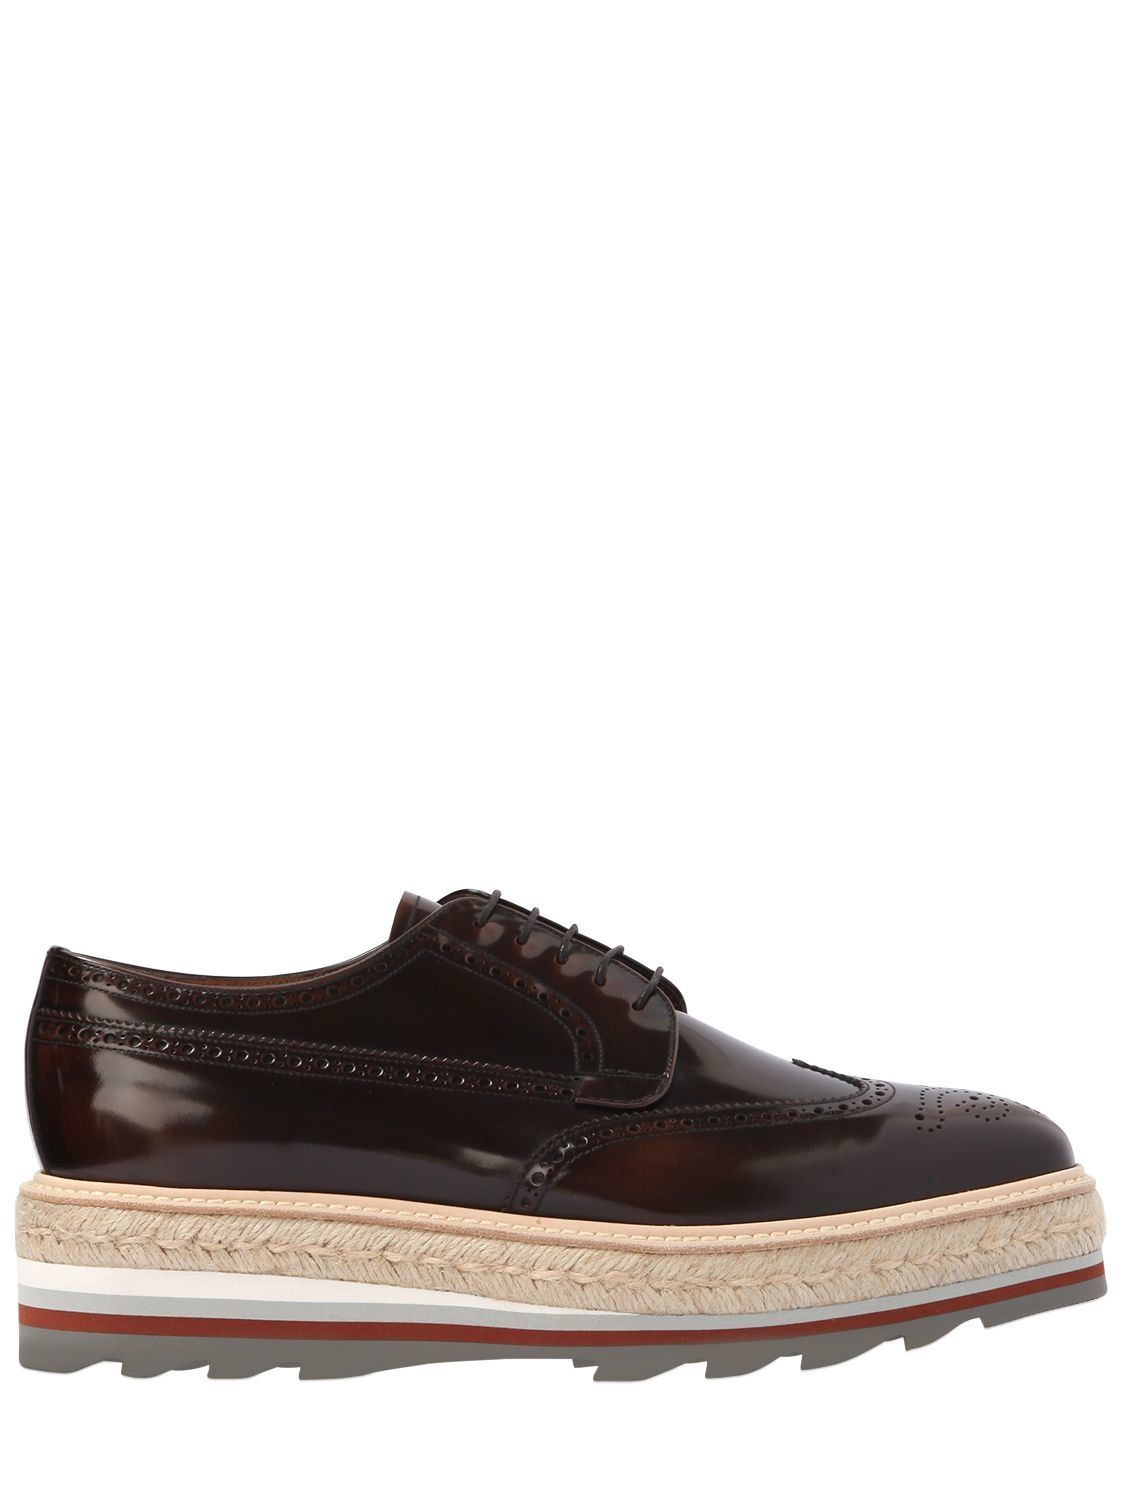 Prada OPPOSITE GRADIENT LEATHER DERBY SHOES h00lGzYqW